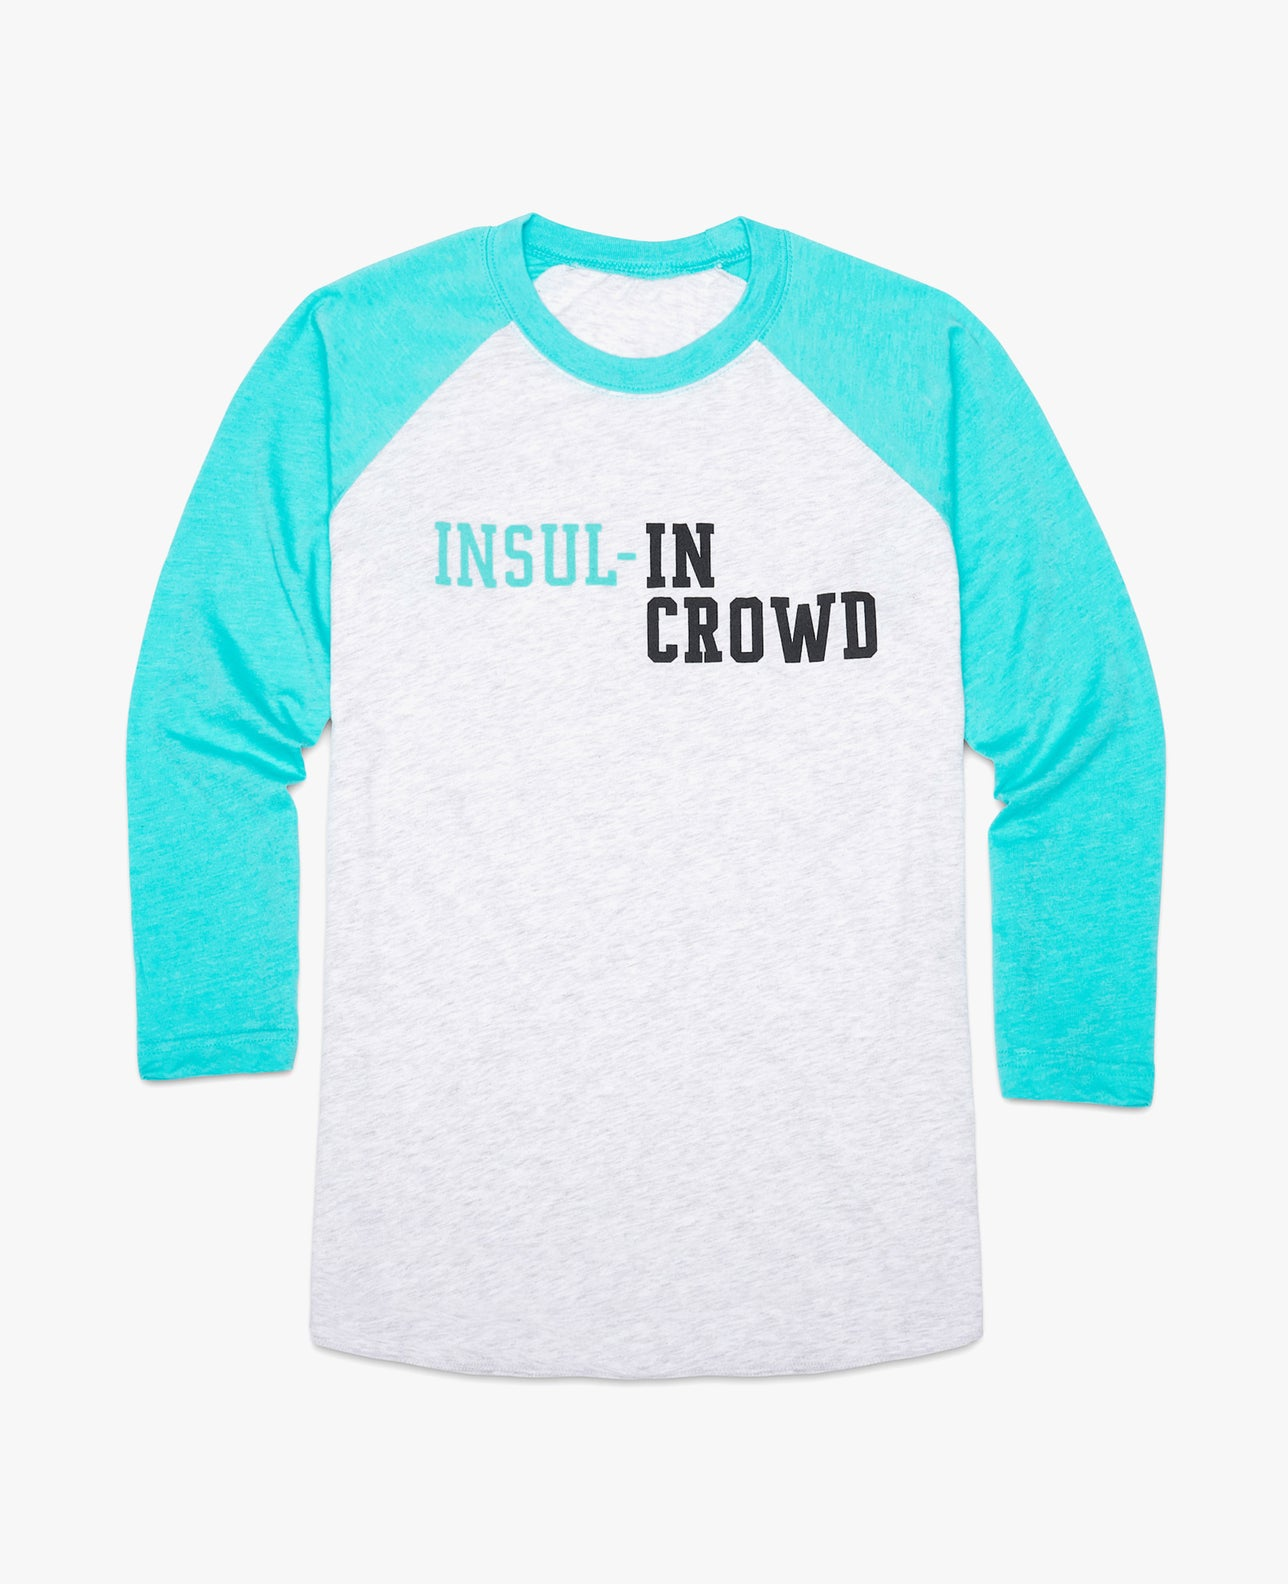 Insul-In Crowd T-Shirt